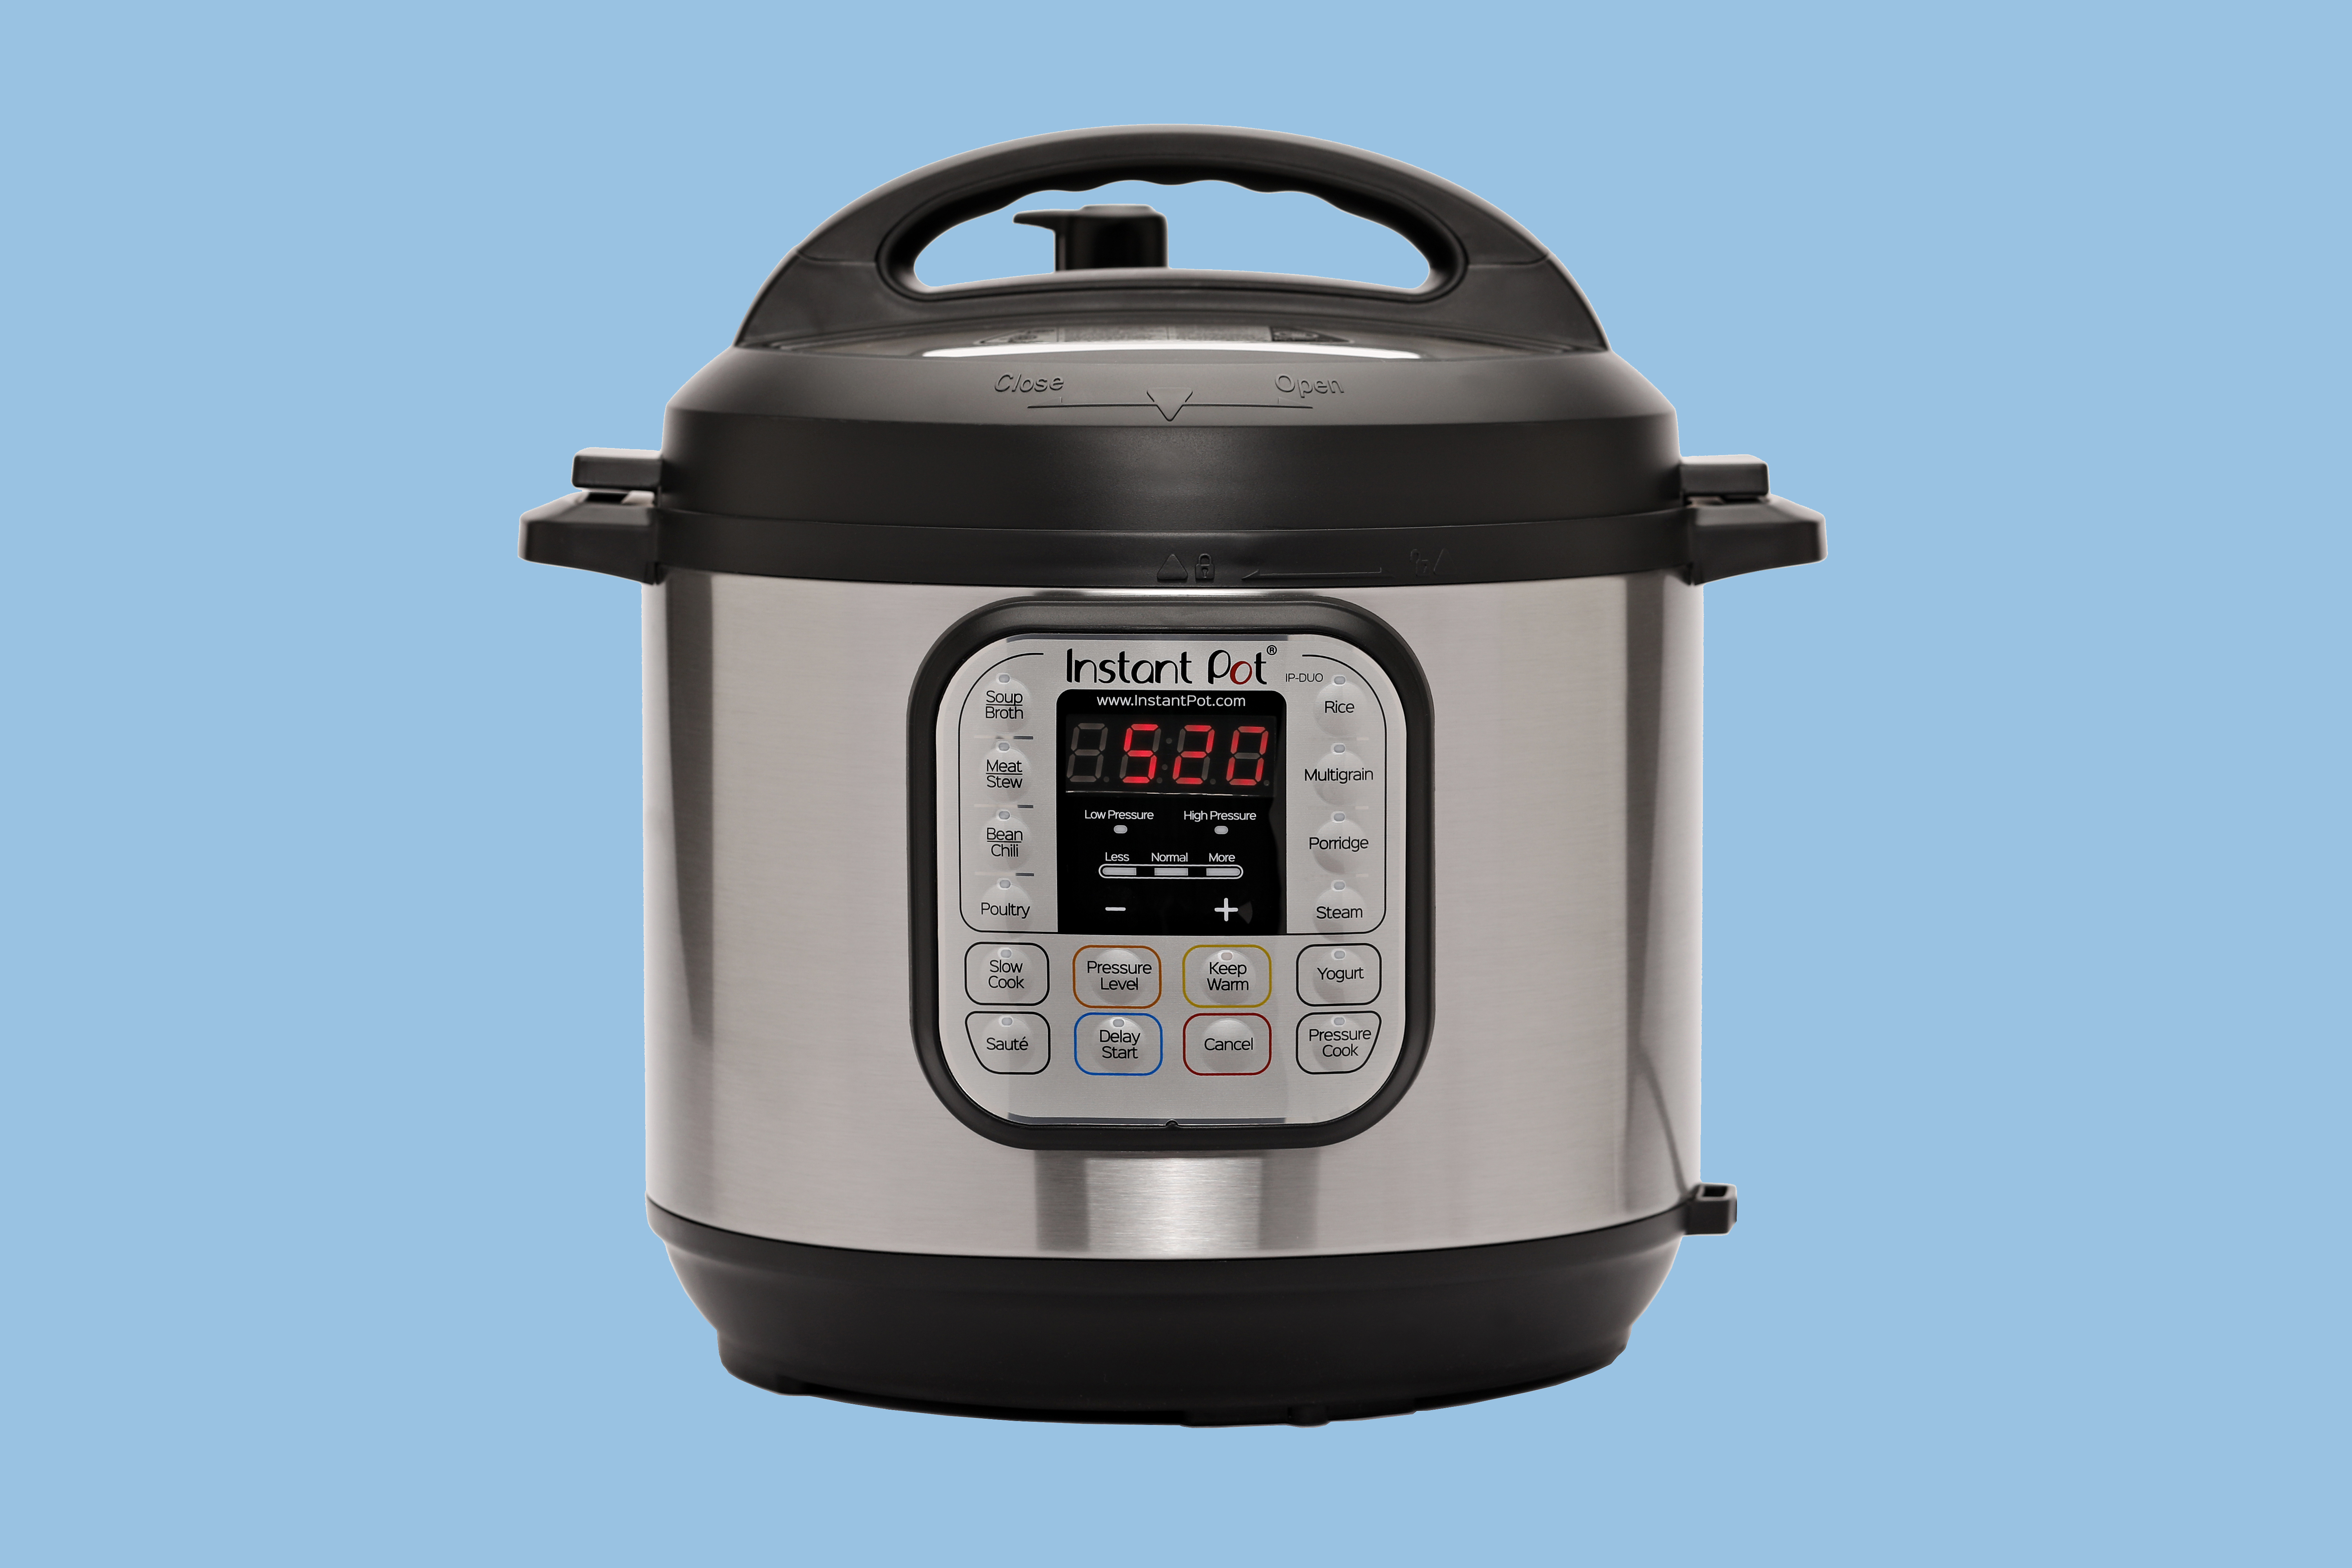 Instant Pot 6-Quart 7-in-1 Pressure Cooker